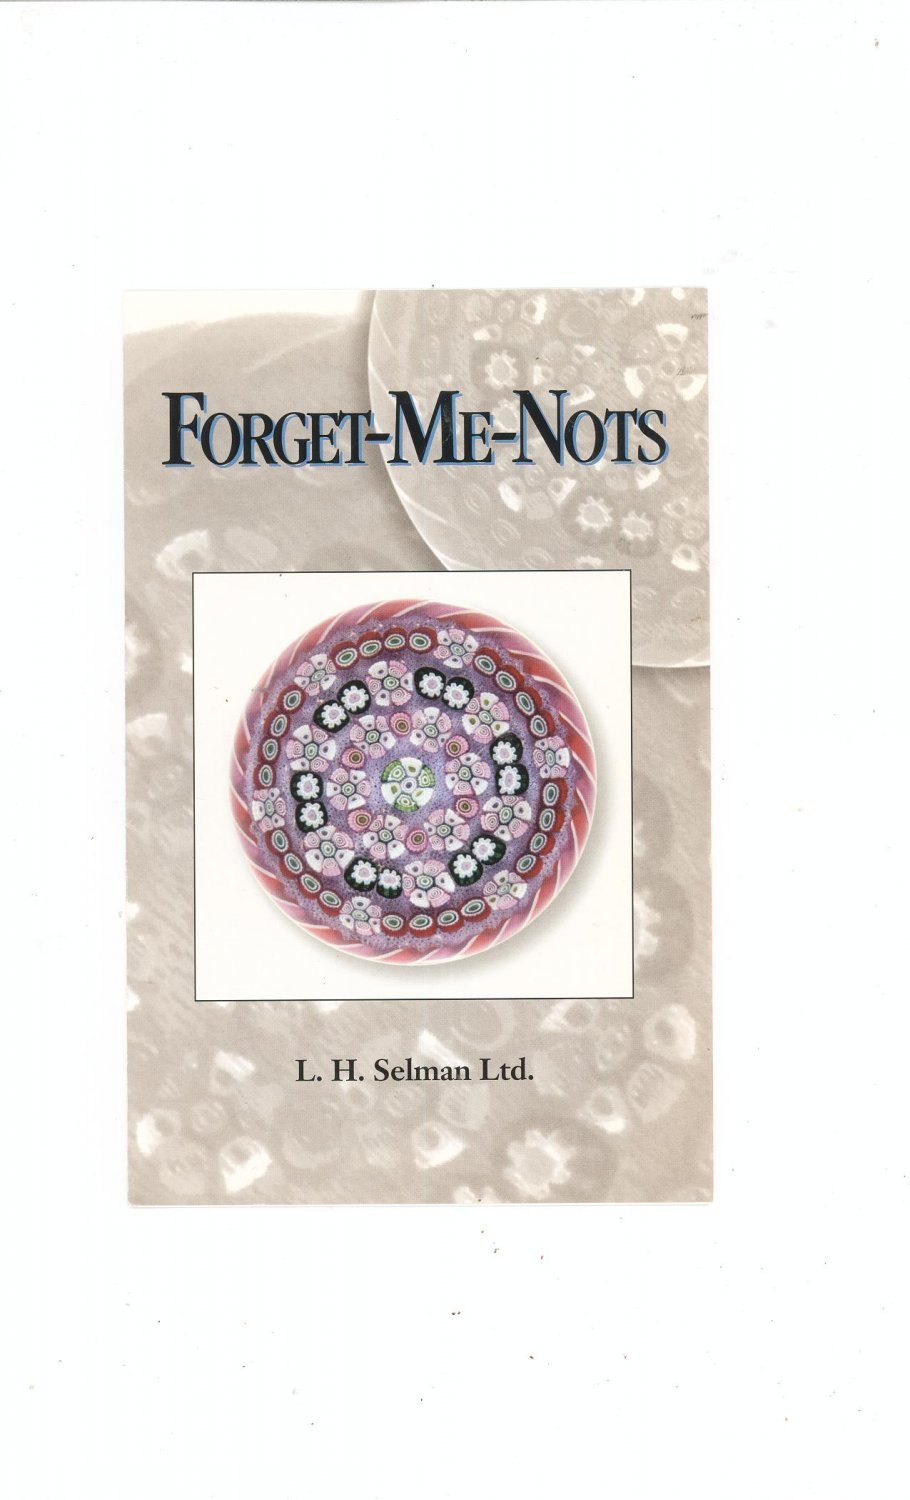 Forget Me Nots  Catalog / Brochure by L. H. Selman Ltd. Paperweights